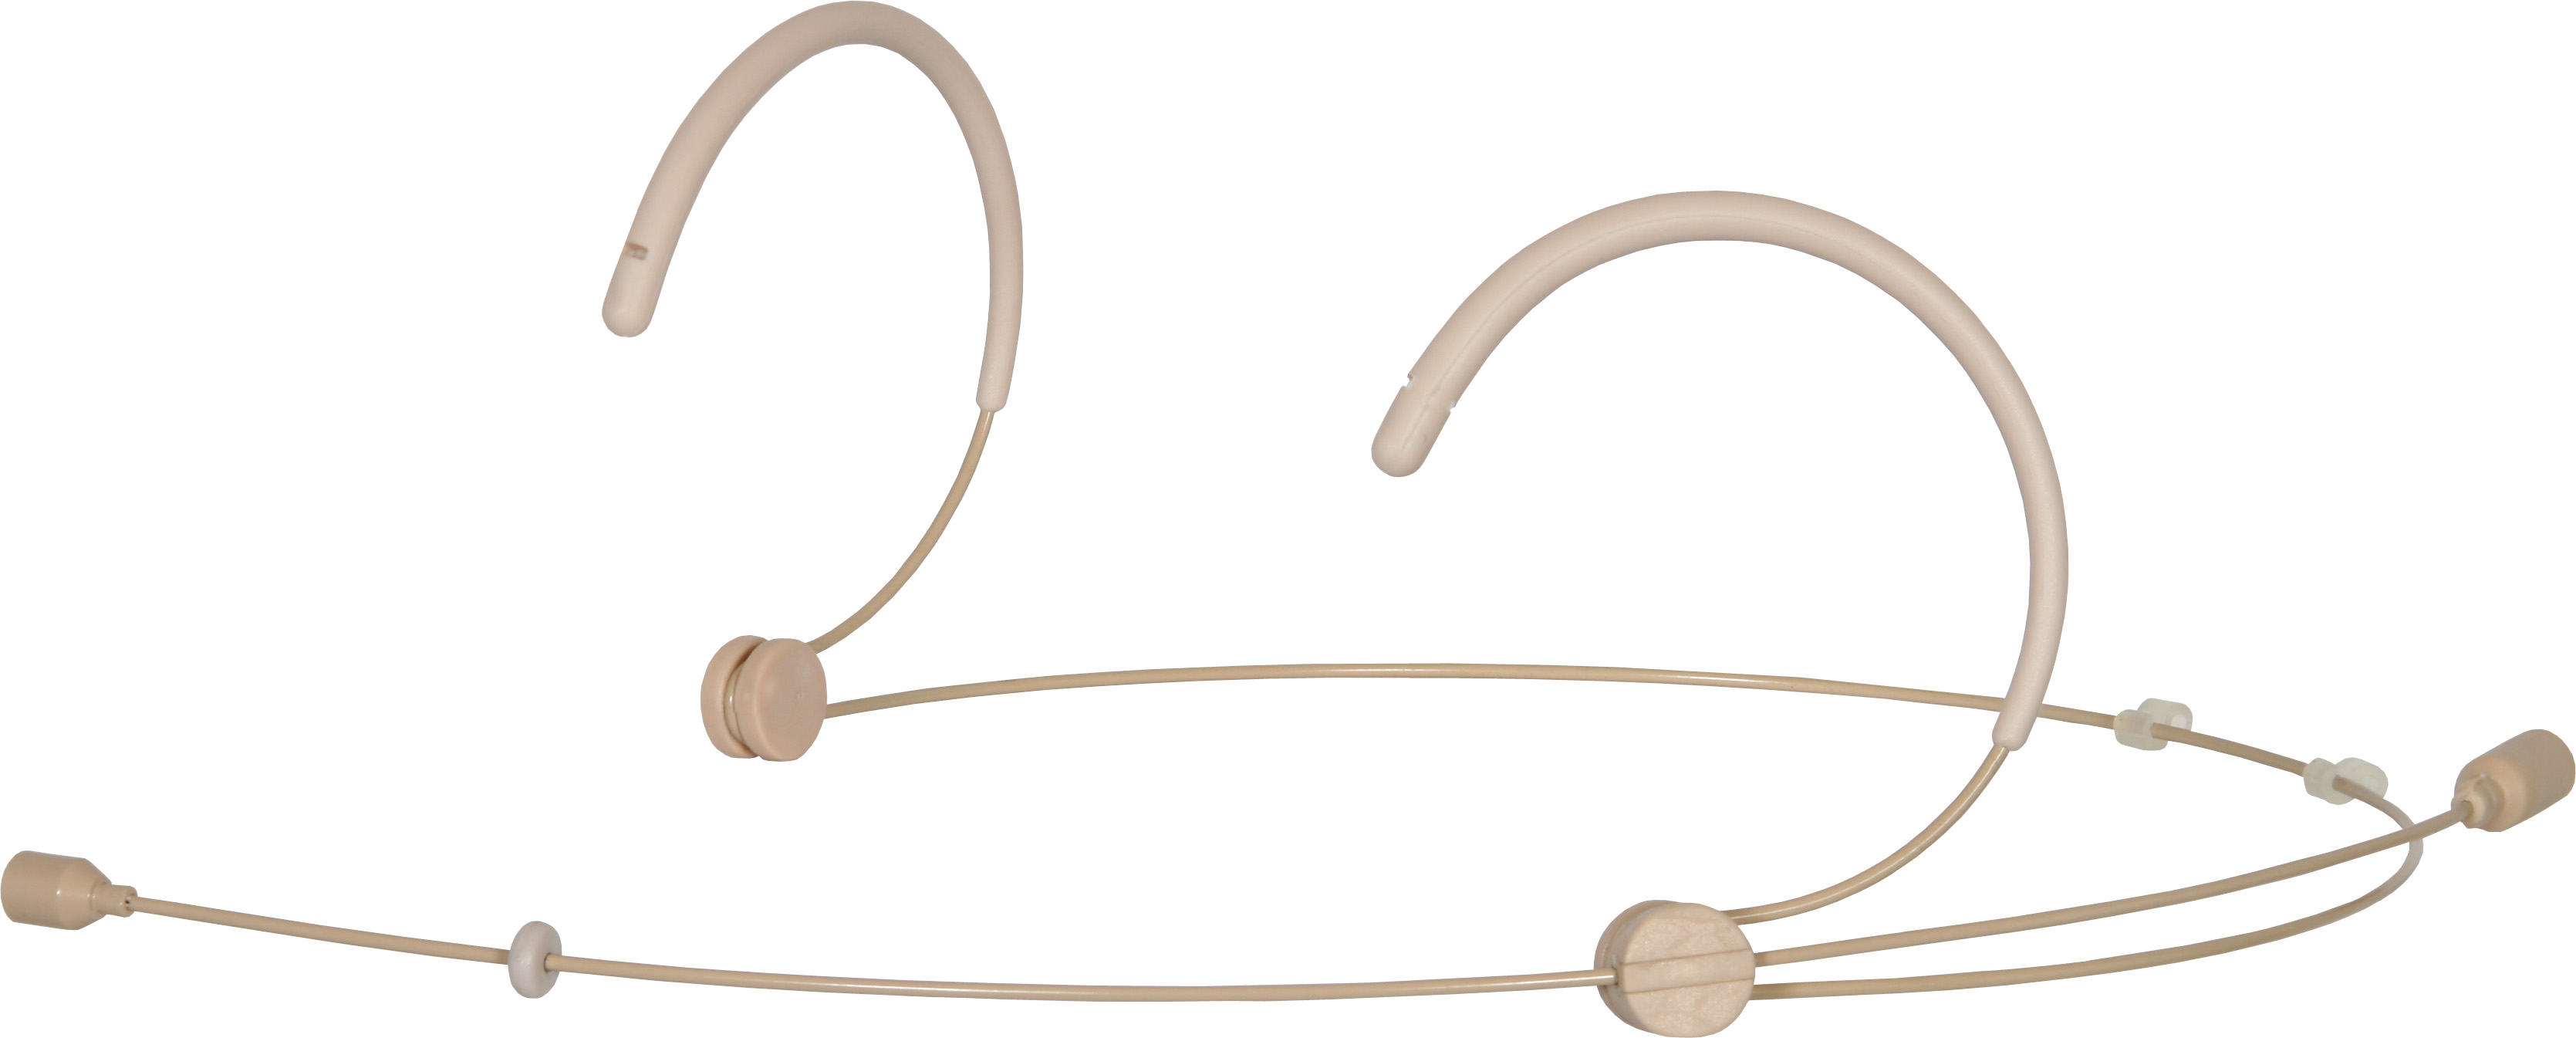 Galaxy Audio HS3-OBG-SHU Beige Lightweight Headset Microphone Wired for Shure